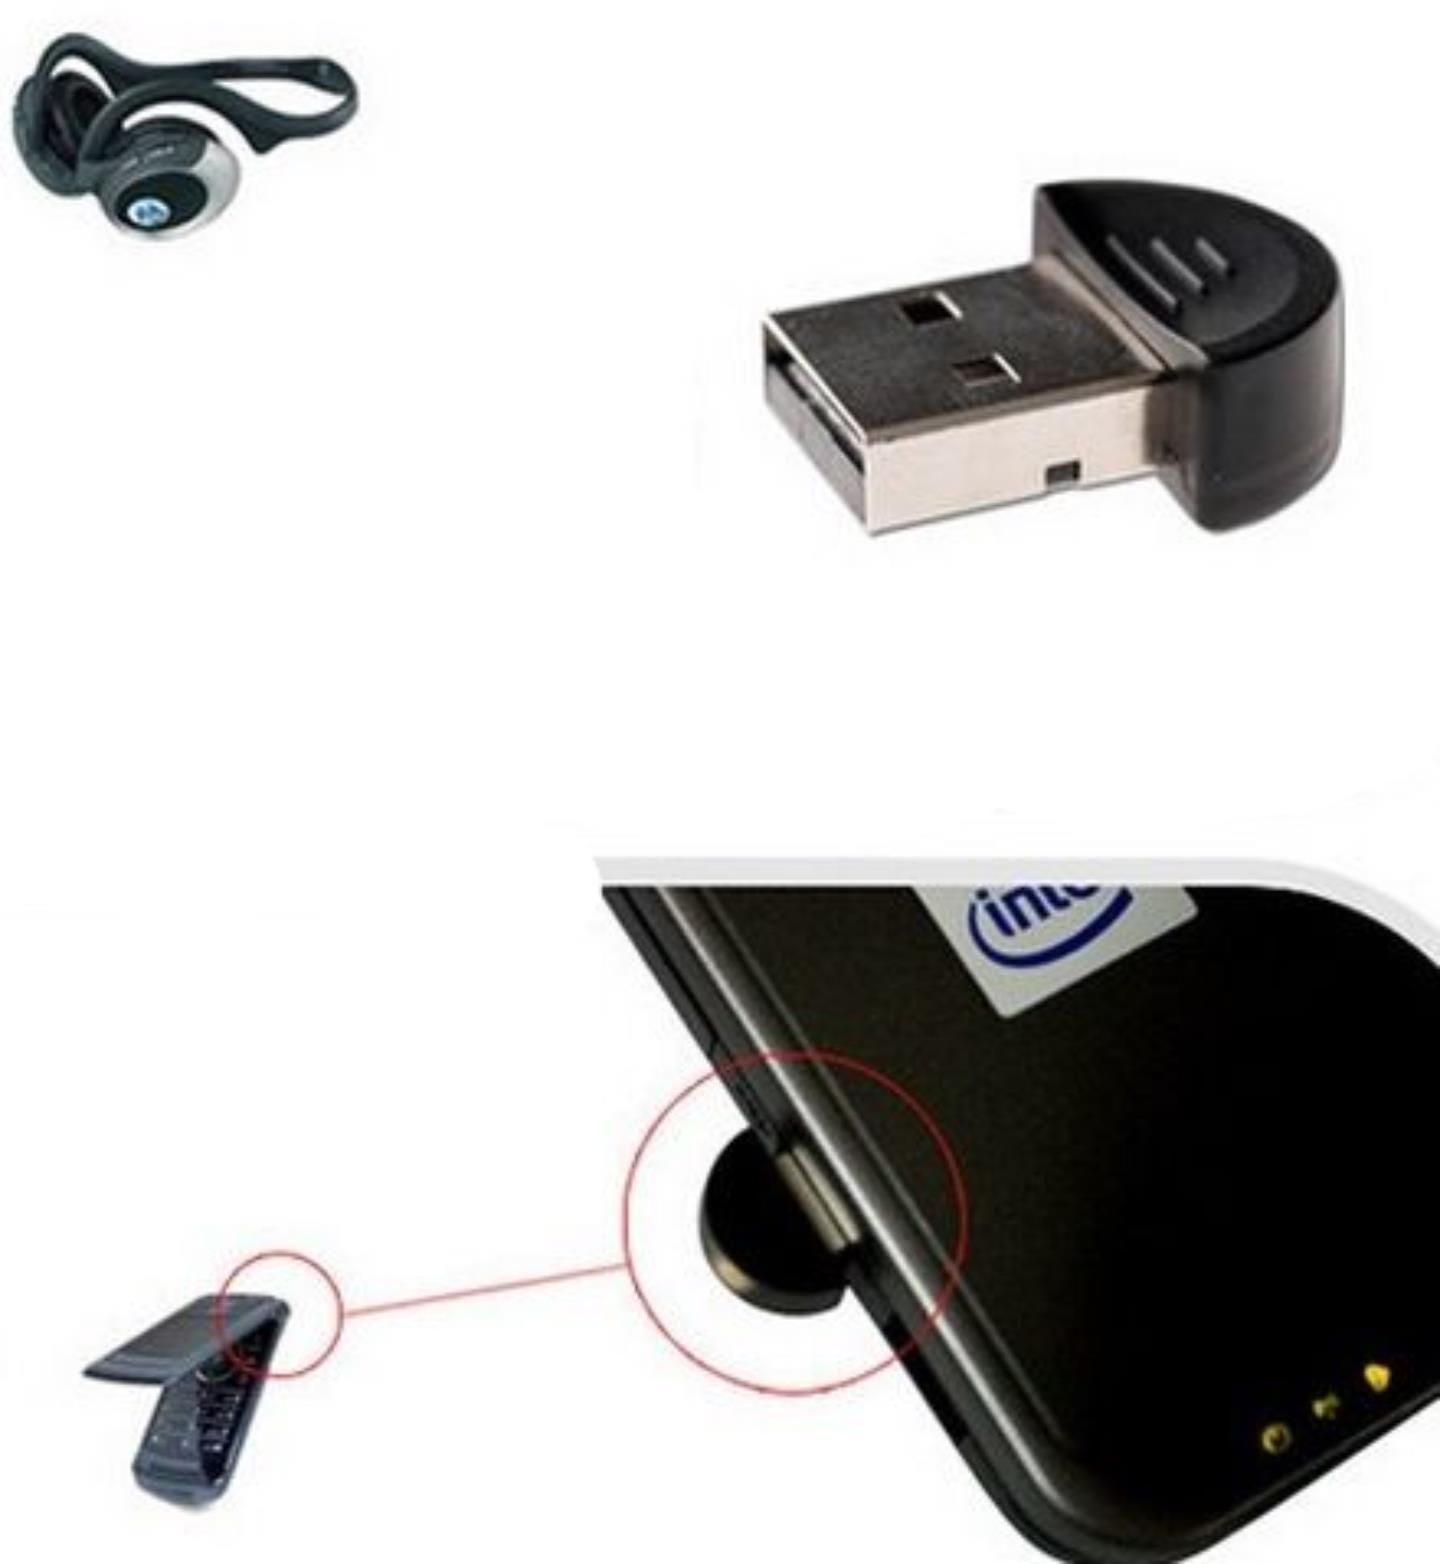 us tiny mini micro usb 2 0 bluetooth v2 edr and similar items. Black Bedroom Furniture Sets. Home Design Ideas